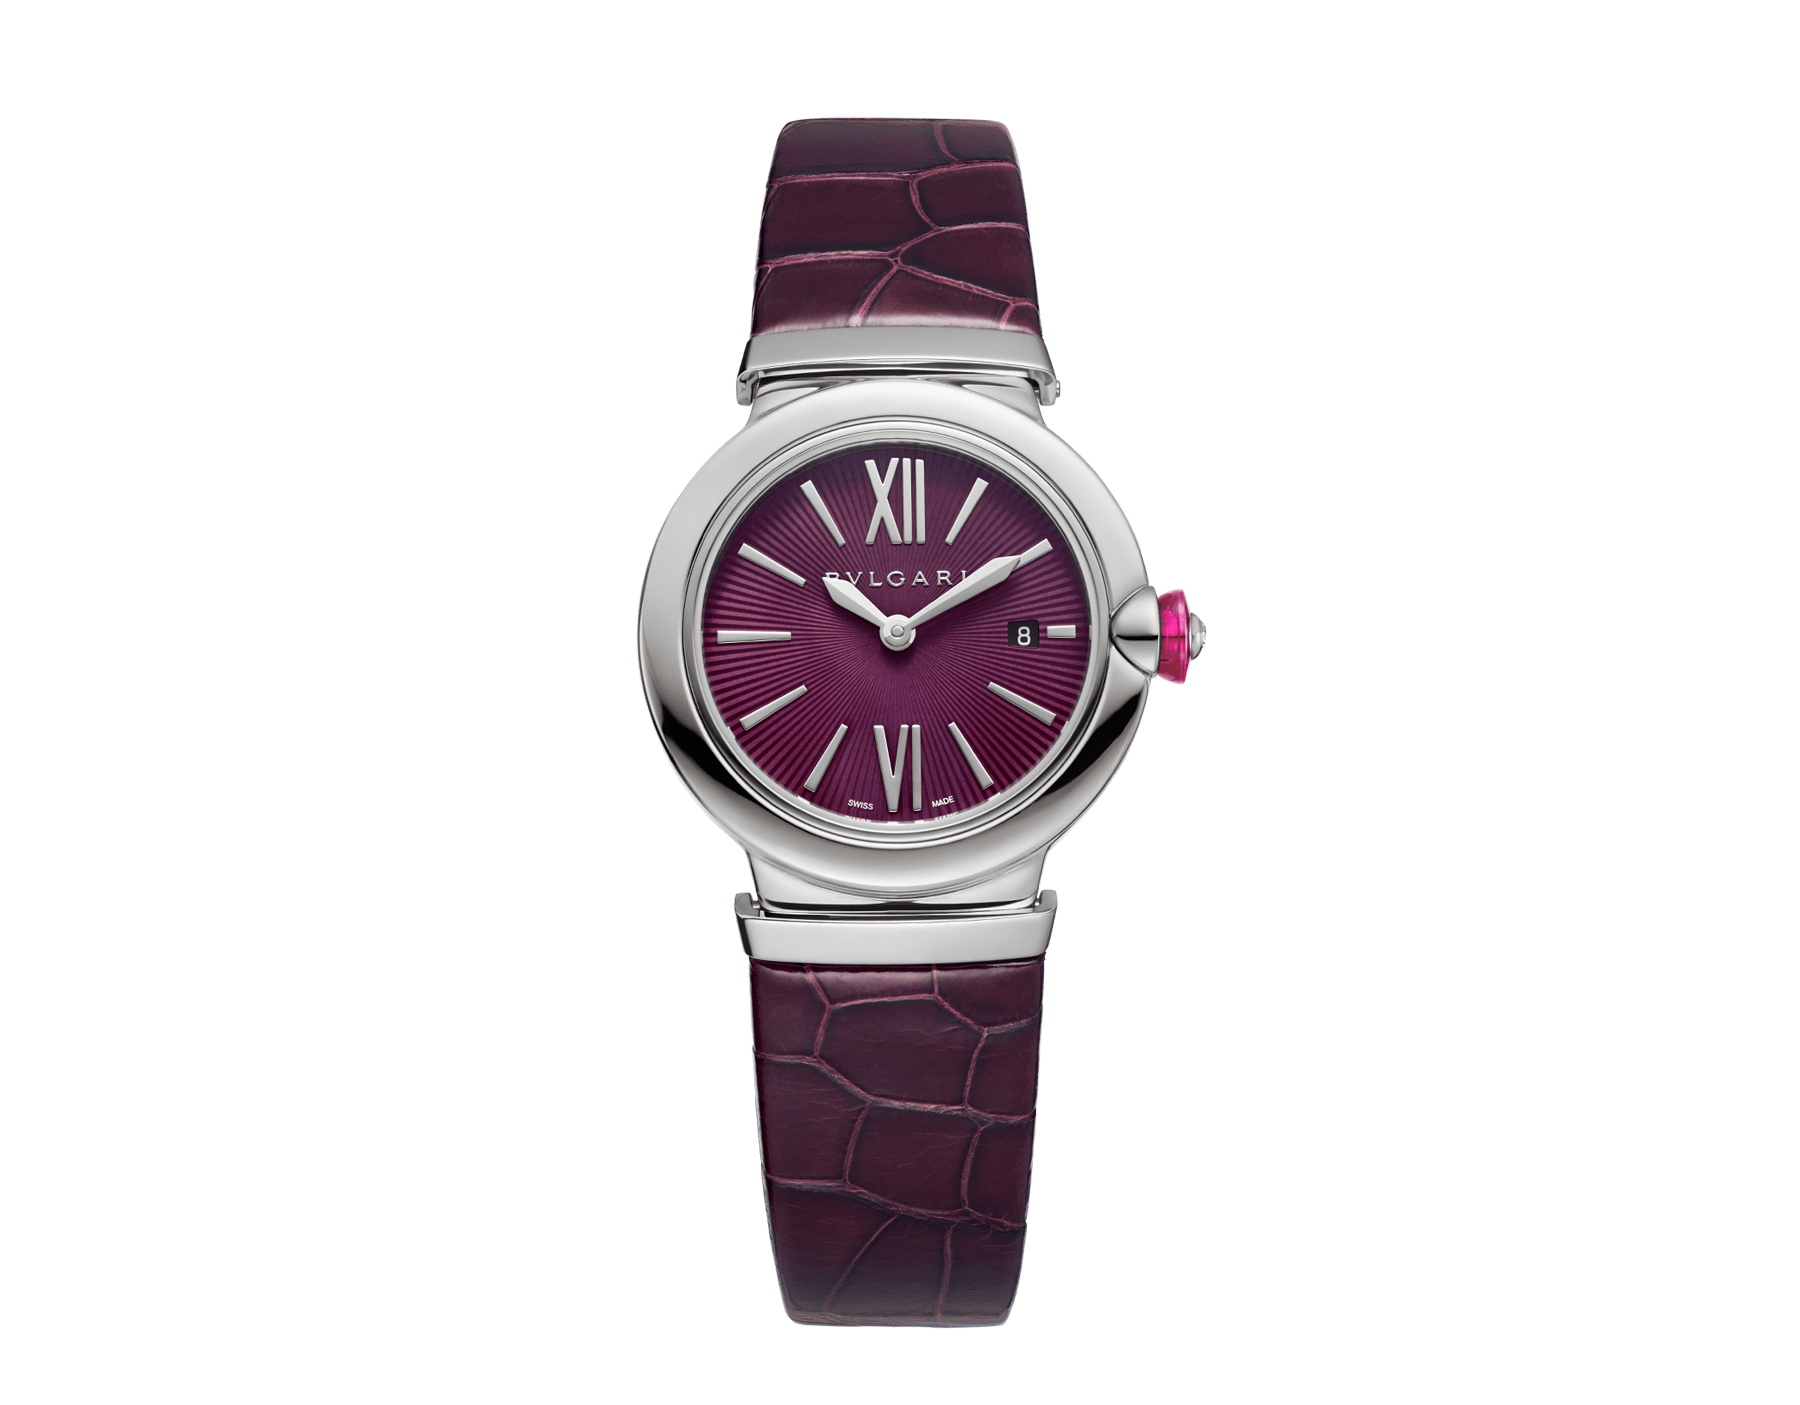 LVCEA watch with stainless steel case, violet dial and purple alligator bracelet. 102566 image 1